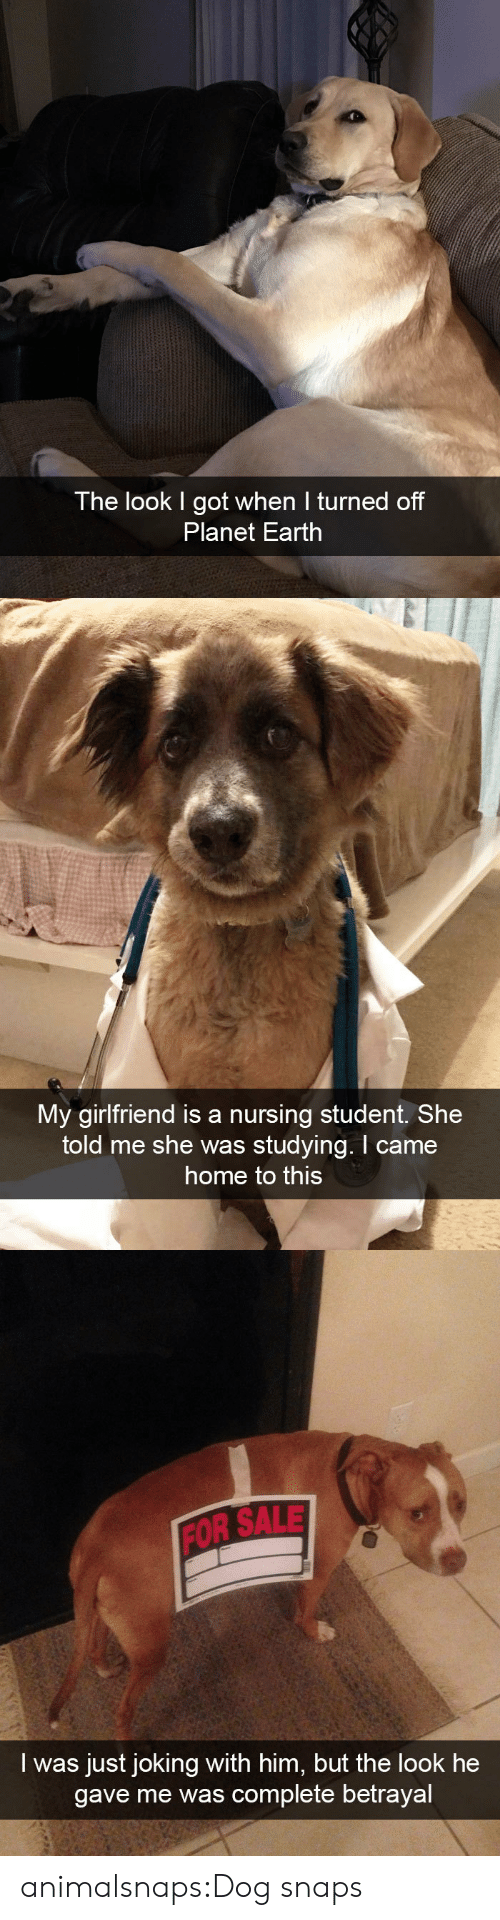 Nursing: The look I got when I turned off  Planet Earth   My girlfriend is a nursing student. She  told me she was studying. I came  home to this   FOR SALE  I was just joking with him, but the look he  gave me was complete betrayal animalsnaps:Dog snaps